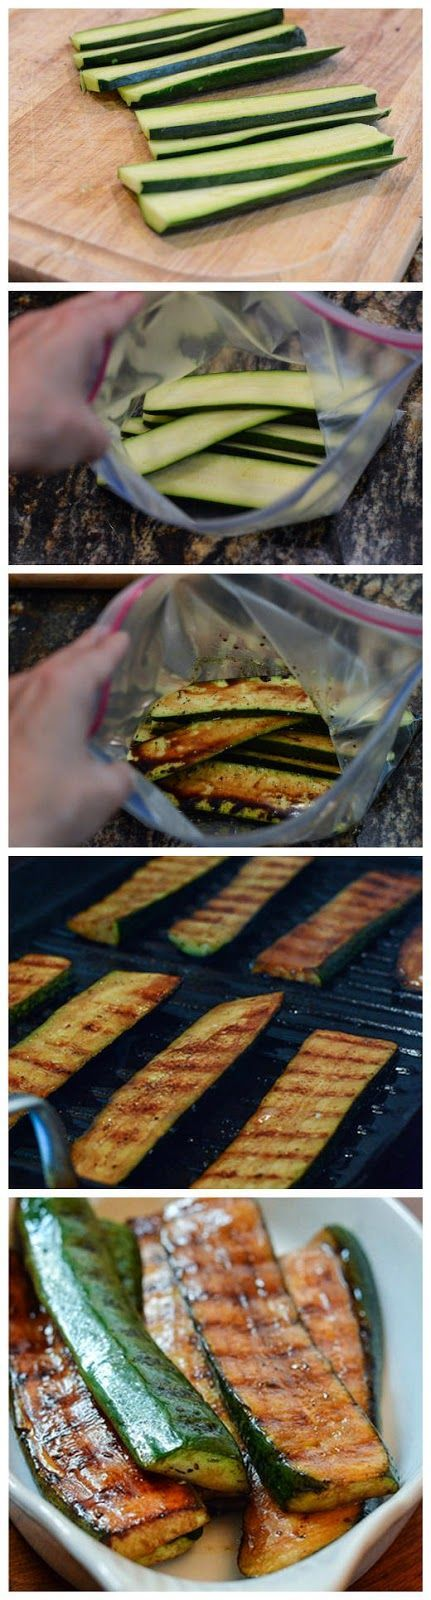 Healthy side dish for your next cookout. Balsamic Grilled Zucchini. #recipe